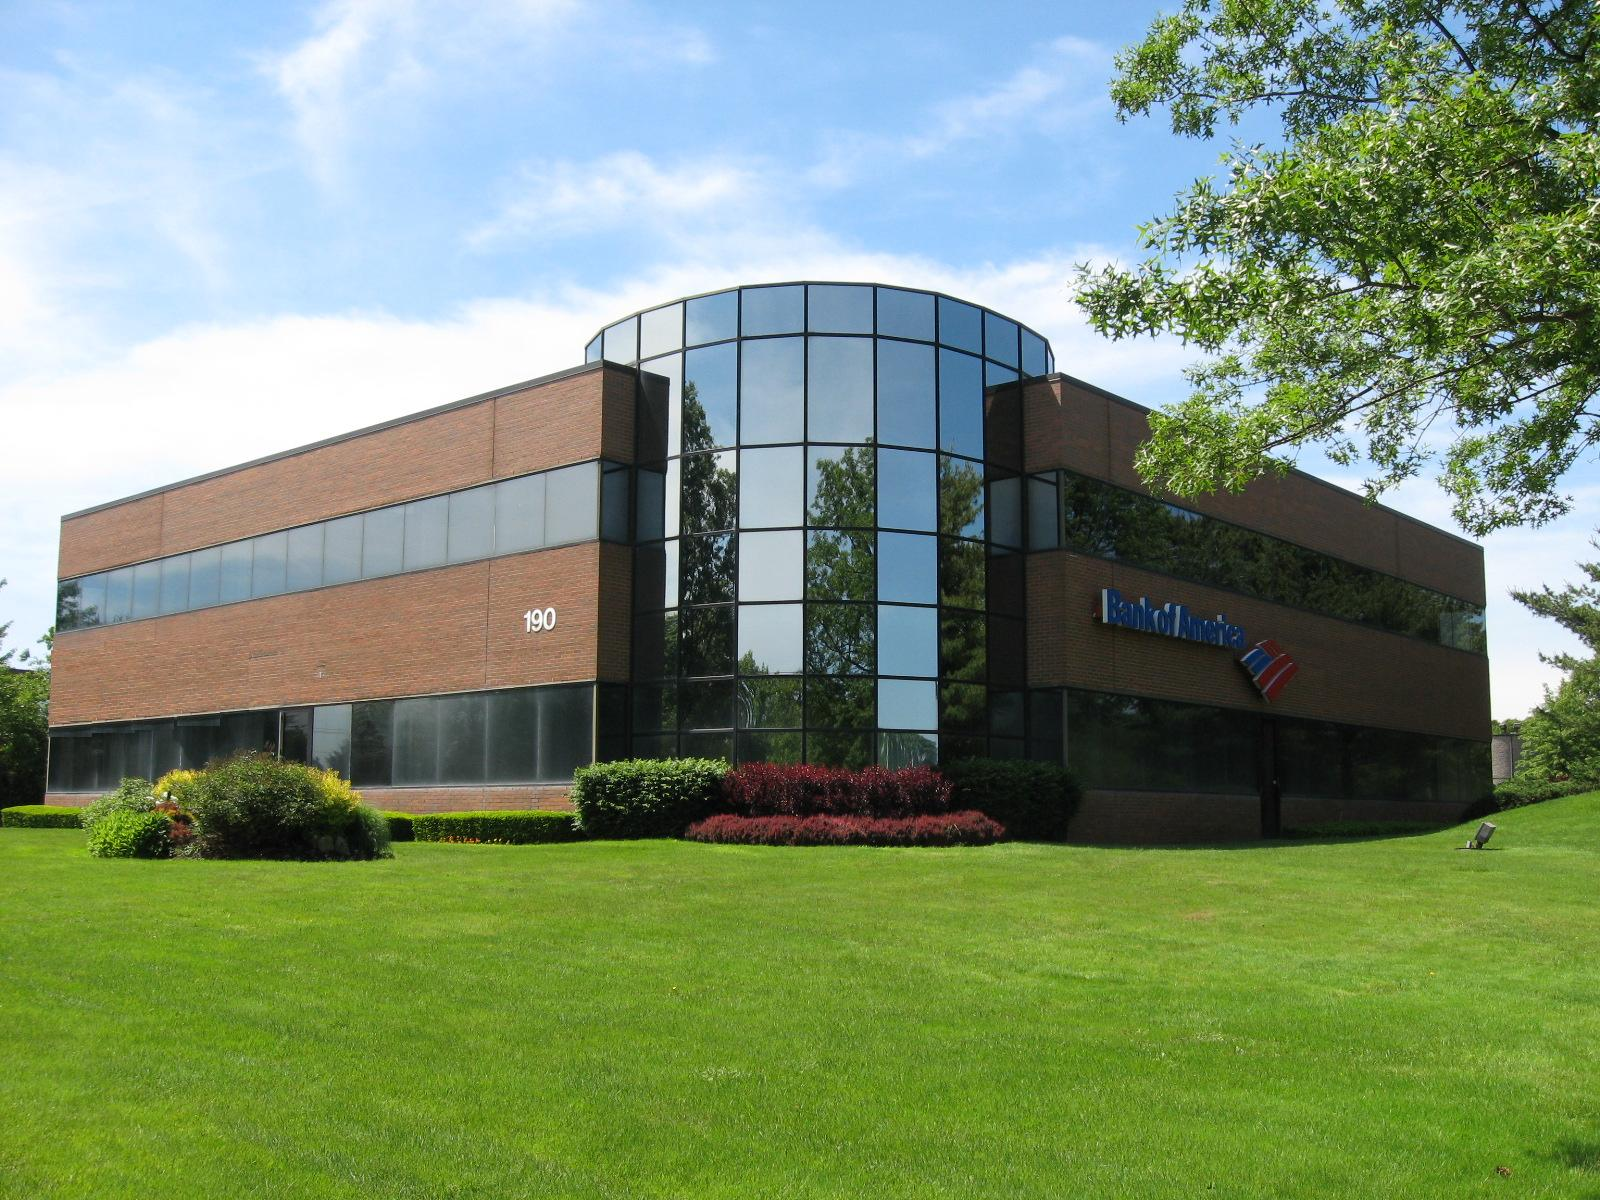 Home office: 190 Motor Parkway, Hauppauge, NY